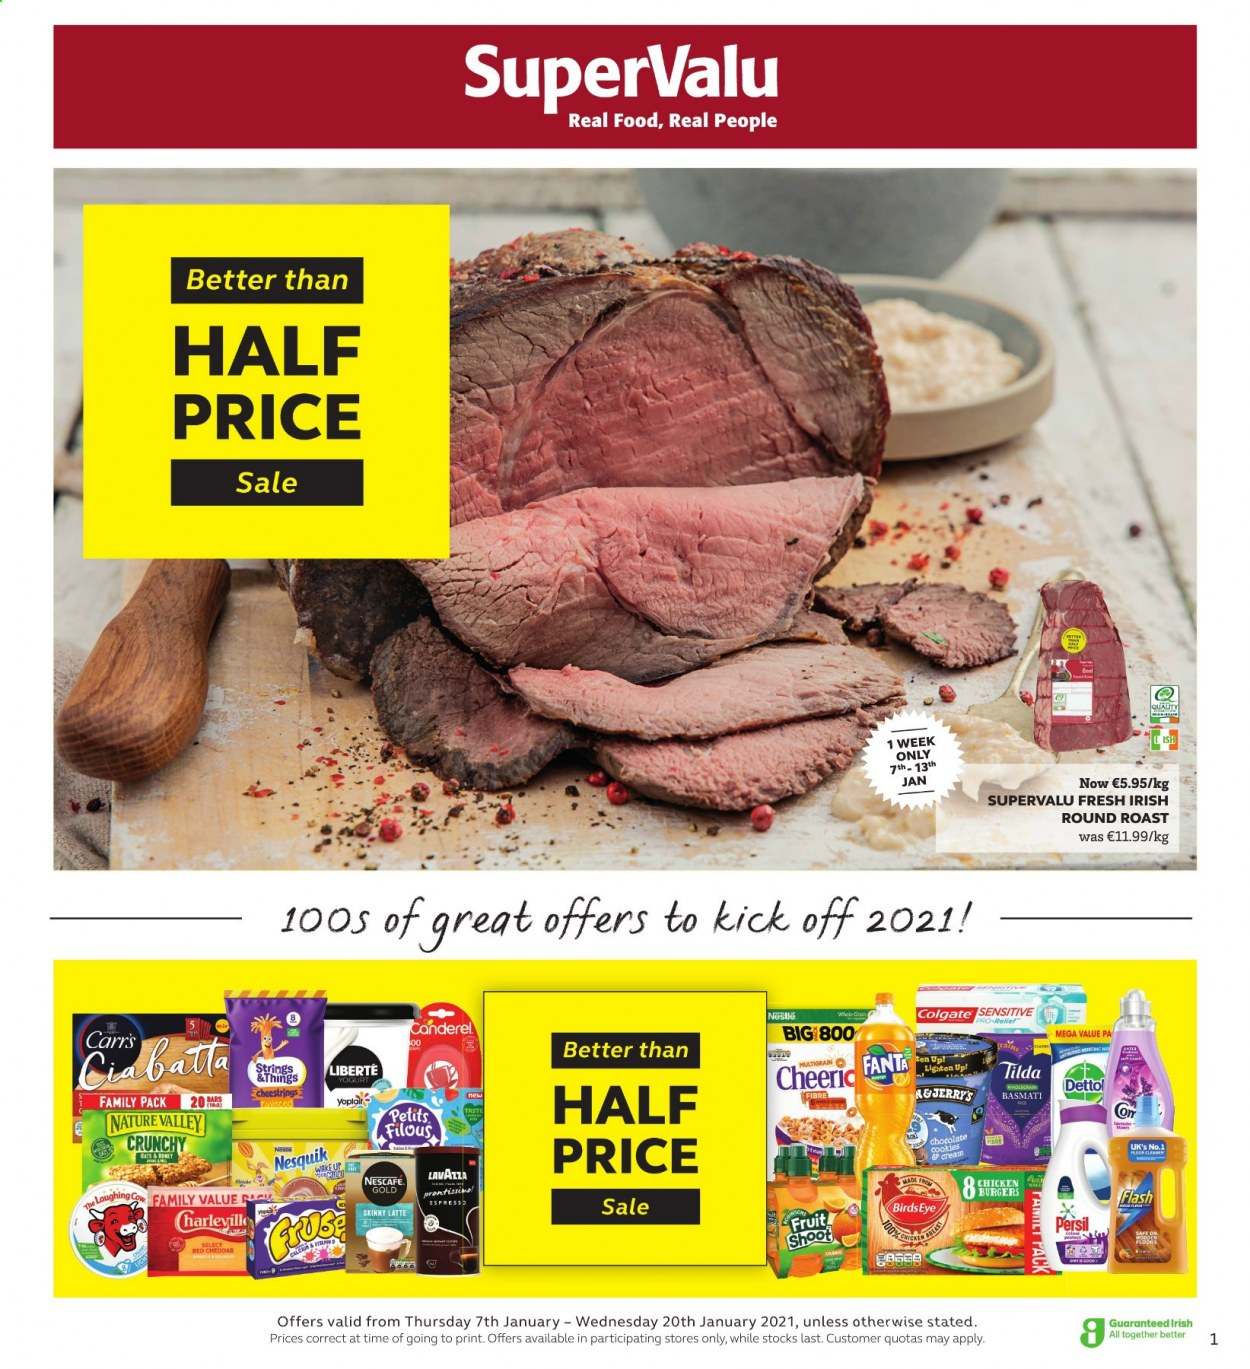 SuperValu offer  - 7.1.2021 - 20.1.2021 - Sales products - hamburger, Bird's Eye, cheddar, The Laughing Cow, yoghurt, Petits Filous, Nestlé, chocolate, Nesquik, Canderel, Nature Valley, basmati rice, Fanta, Nescafé, Lavazza, chicken, round roast, Dettol, cleaner, Persil, Colgate. Page 1.